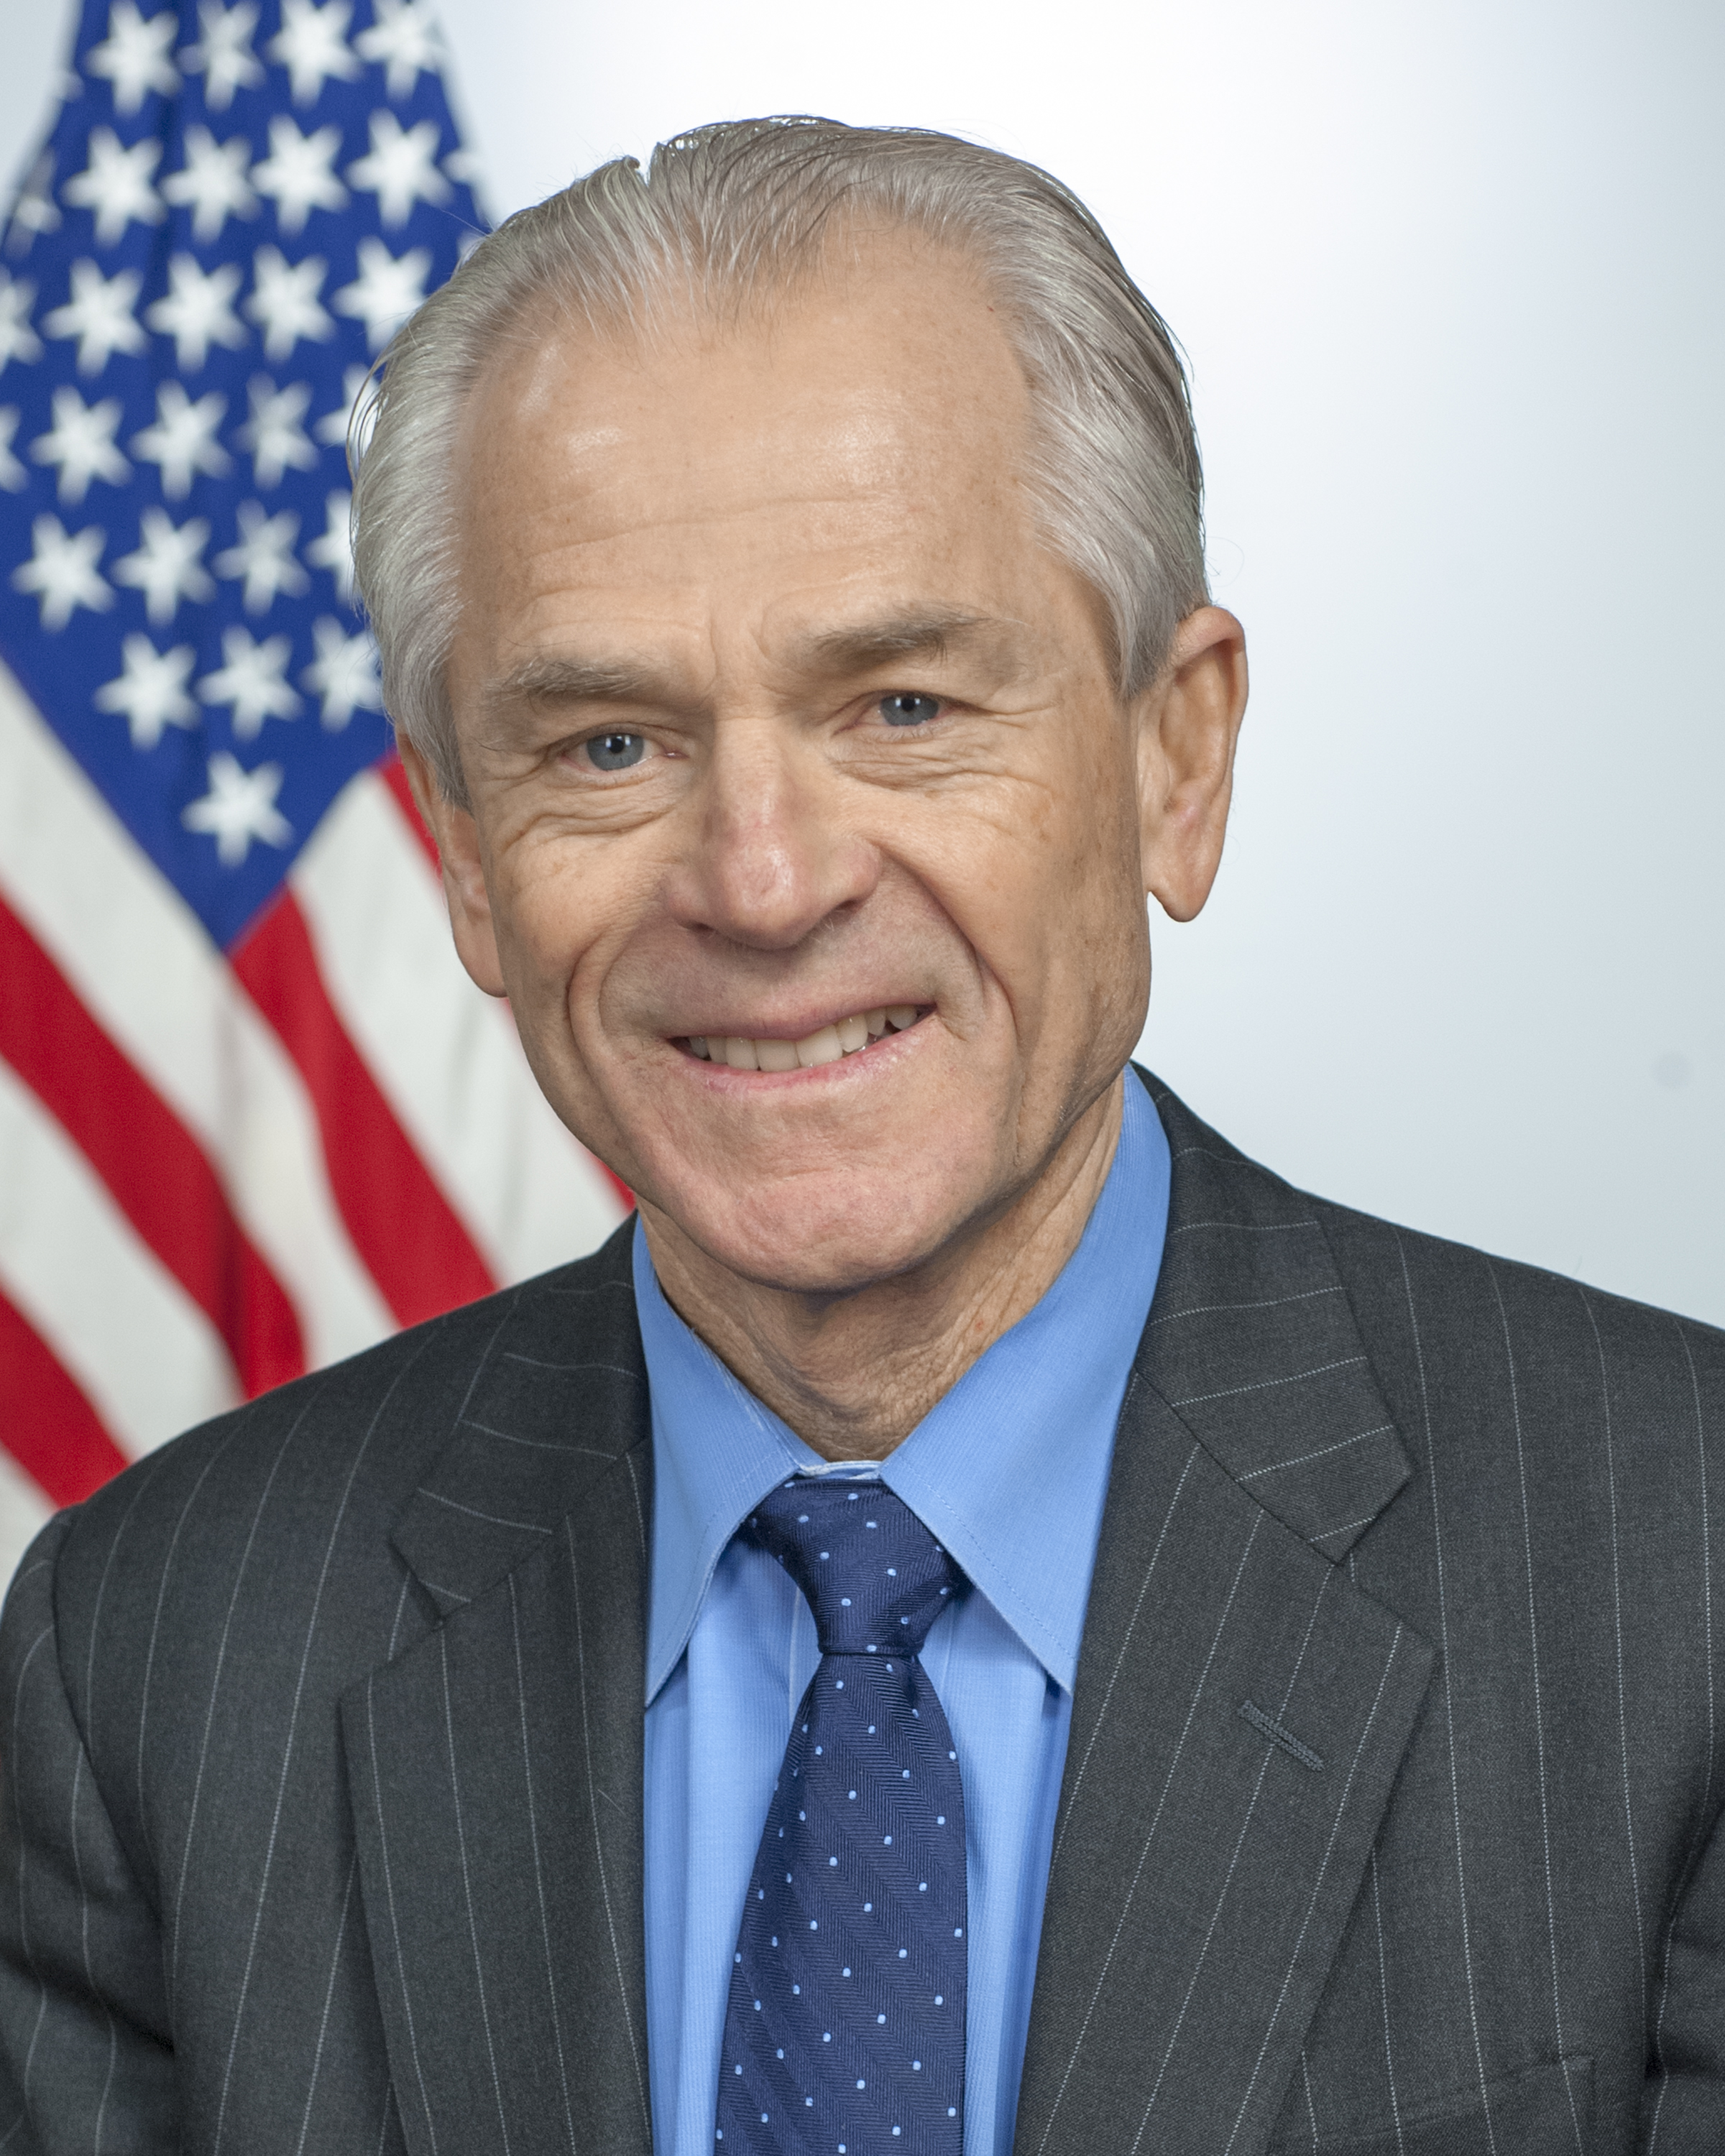 Peter Navarro - Wikipedia